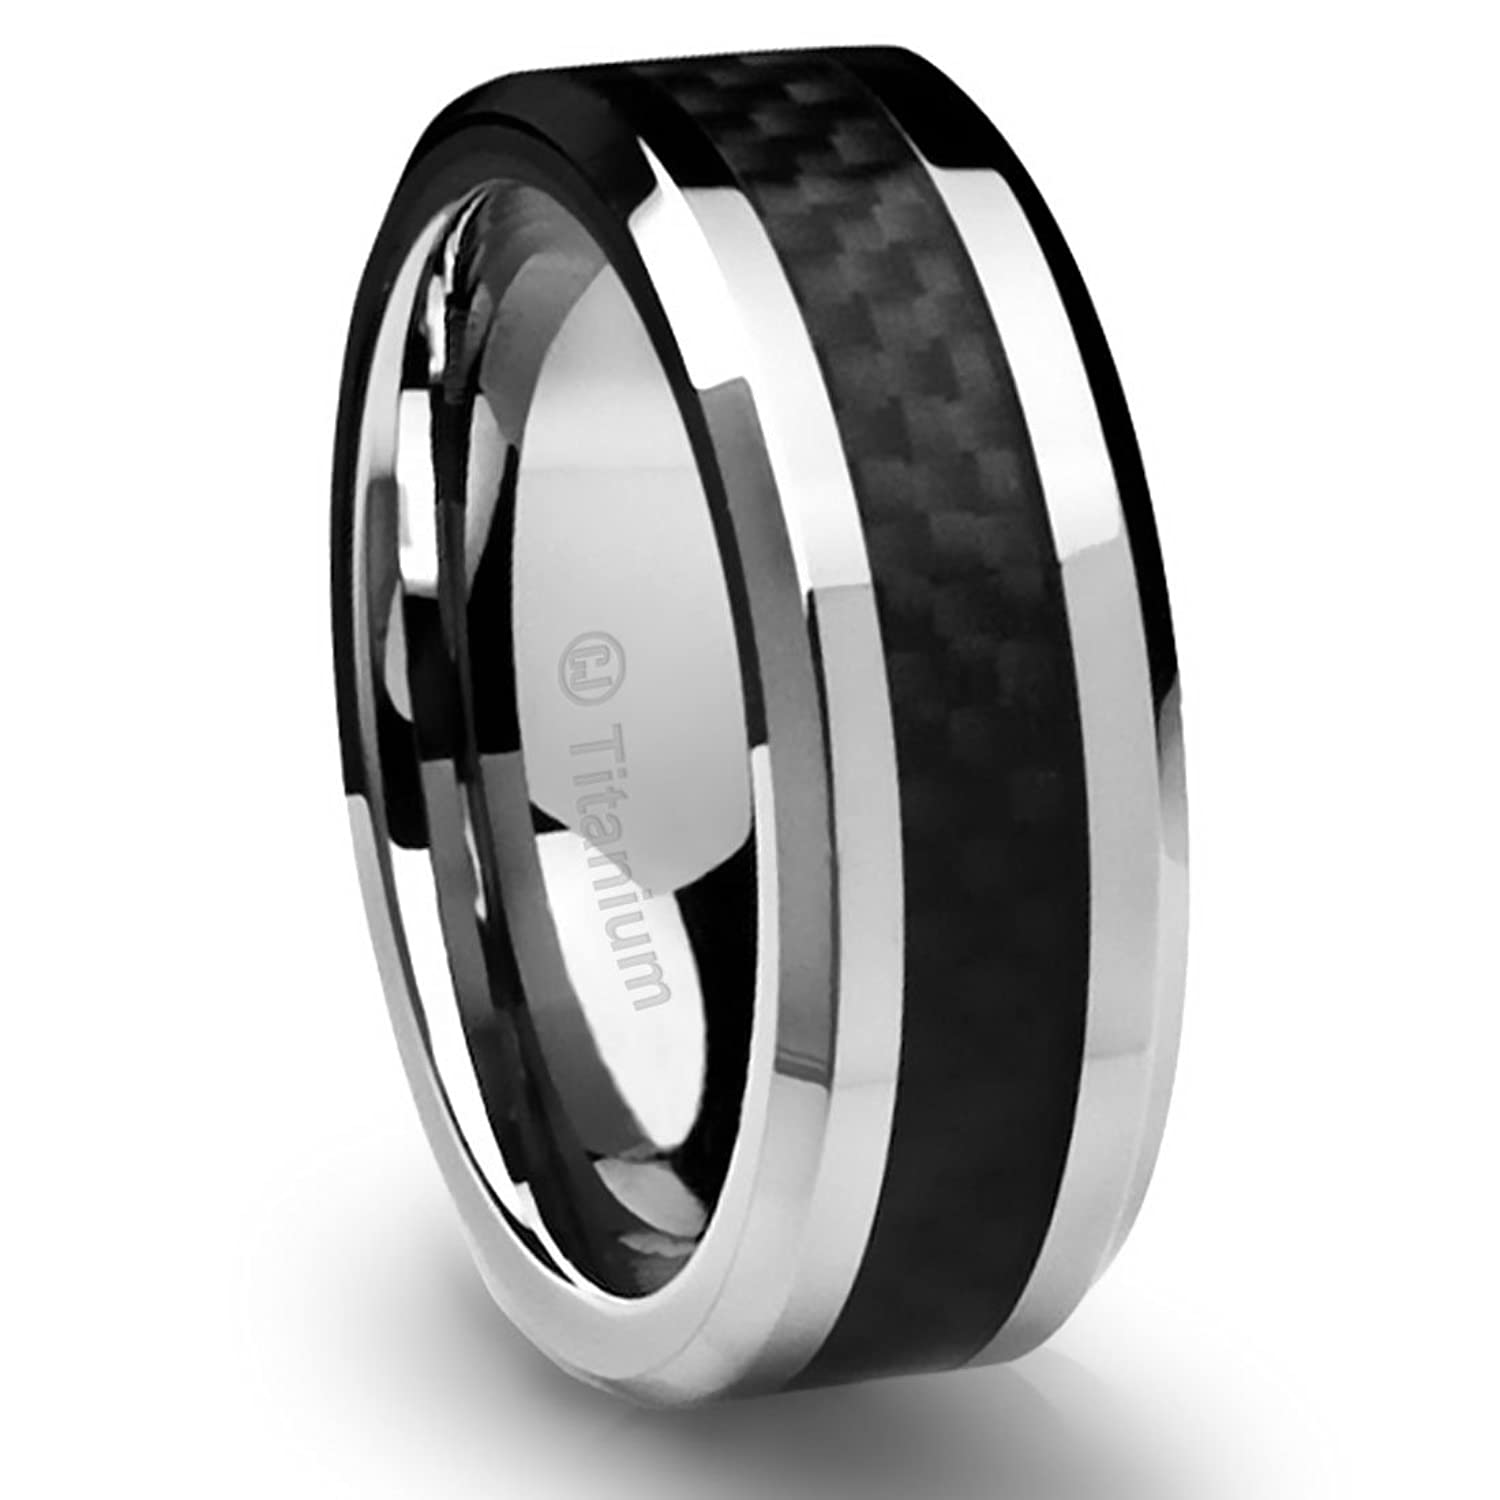 gradient edge men comfort lusso mens for band logo wedding no with thin product bands medical beveled design hypoallergenic singles fit rubber photoshop silicone rings grade black ring concepts